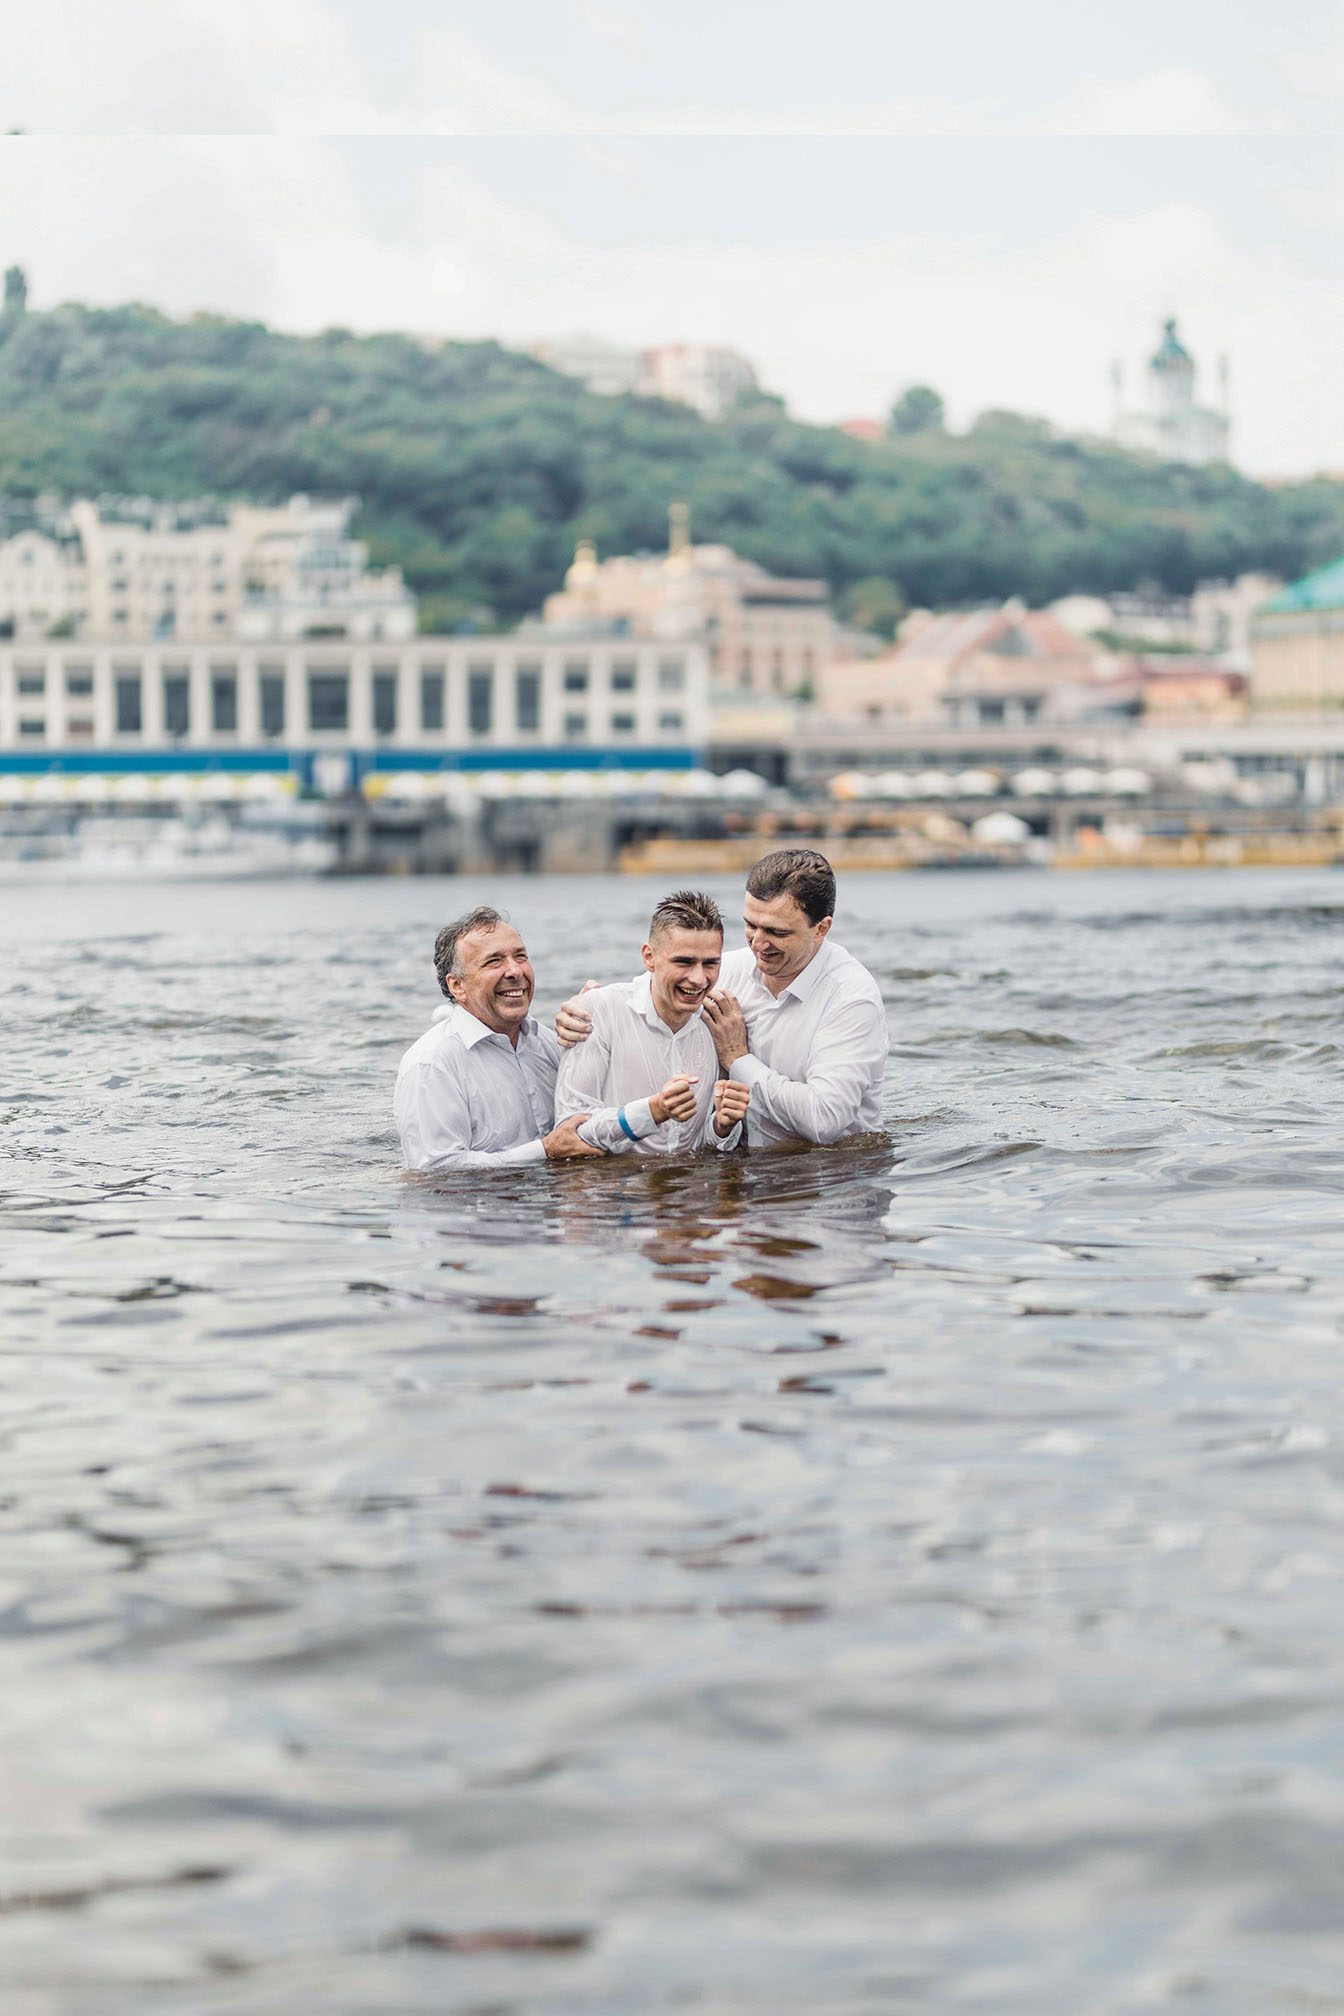 Man baptized in Ukraine